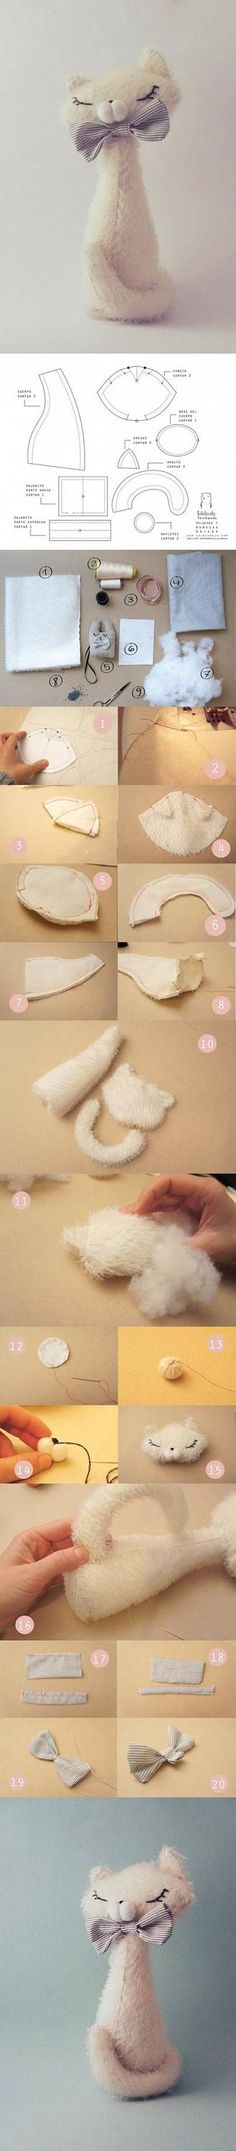 DIY Elegant Cat DIY Projects | UsefulDIY.com